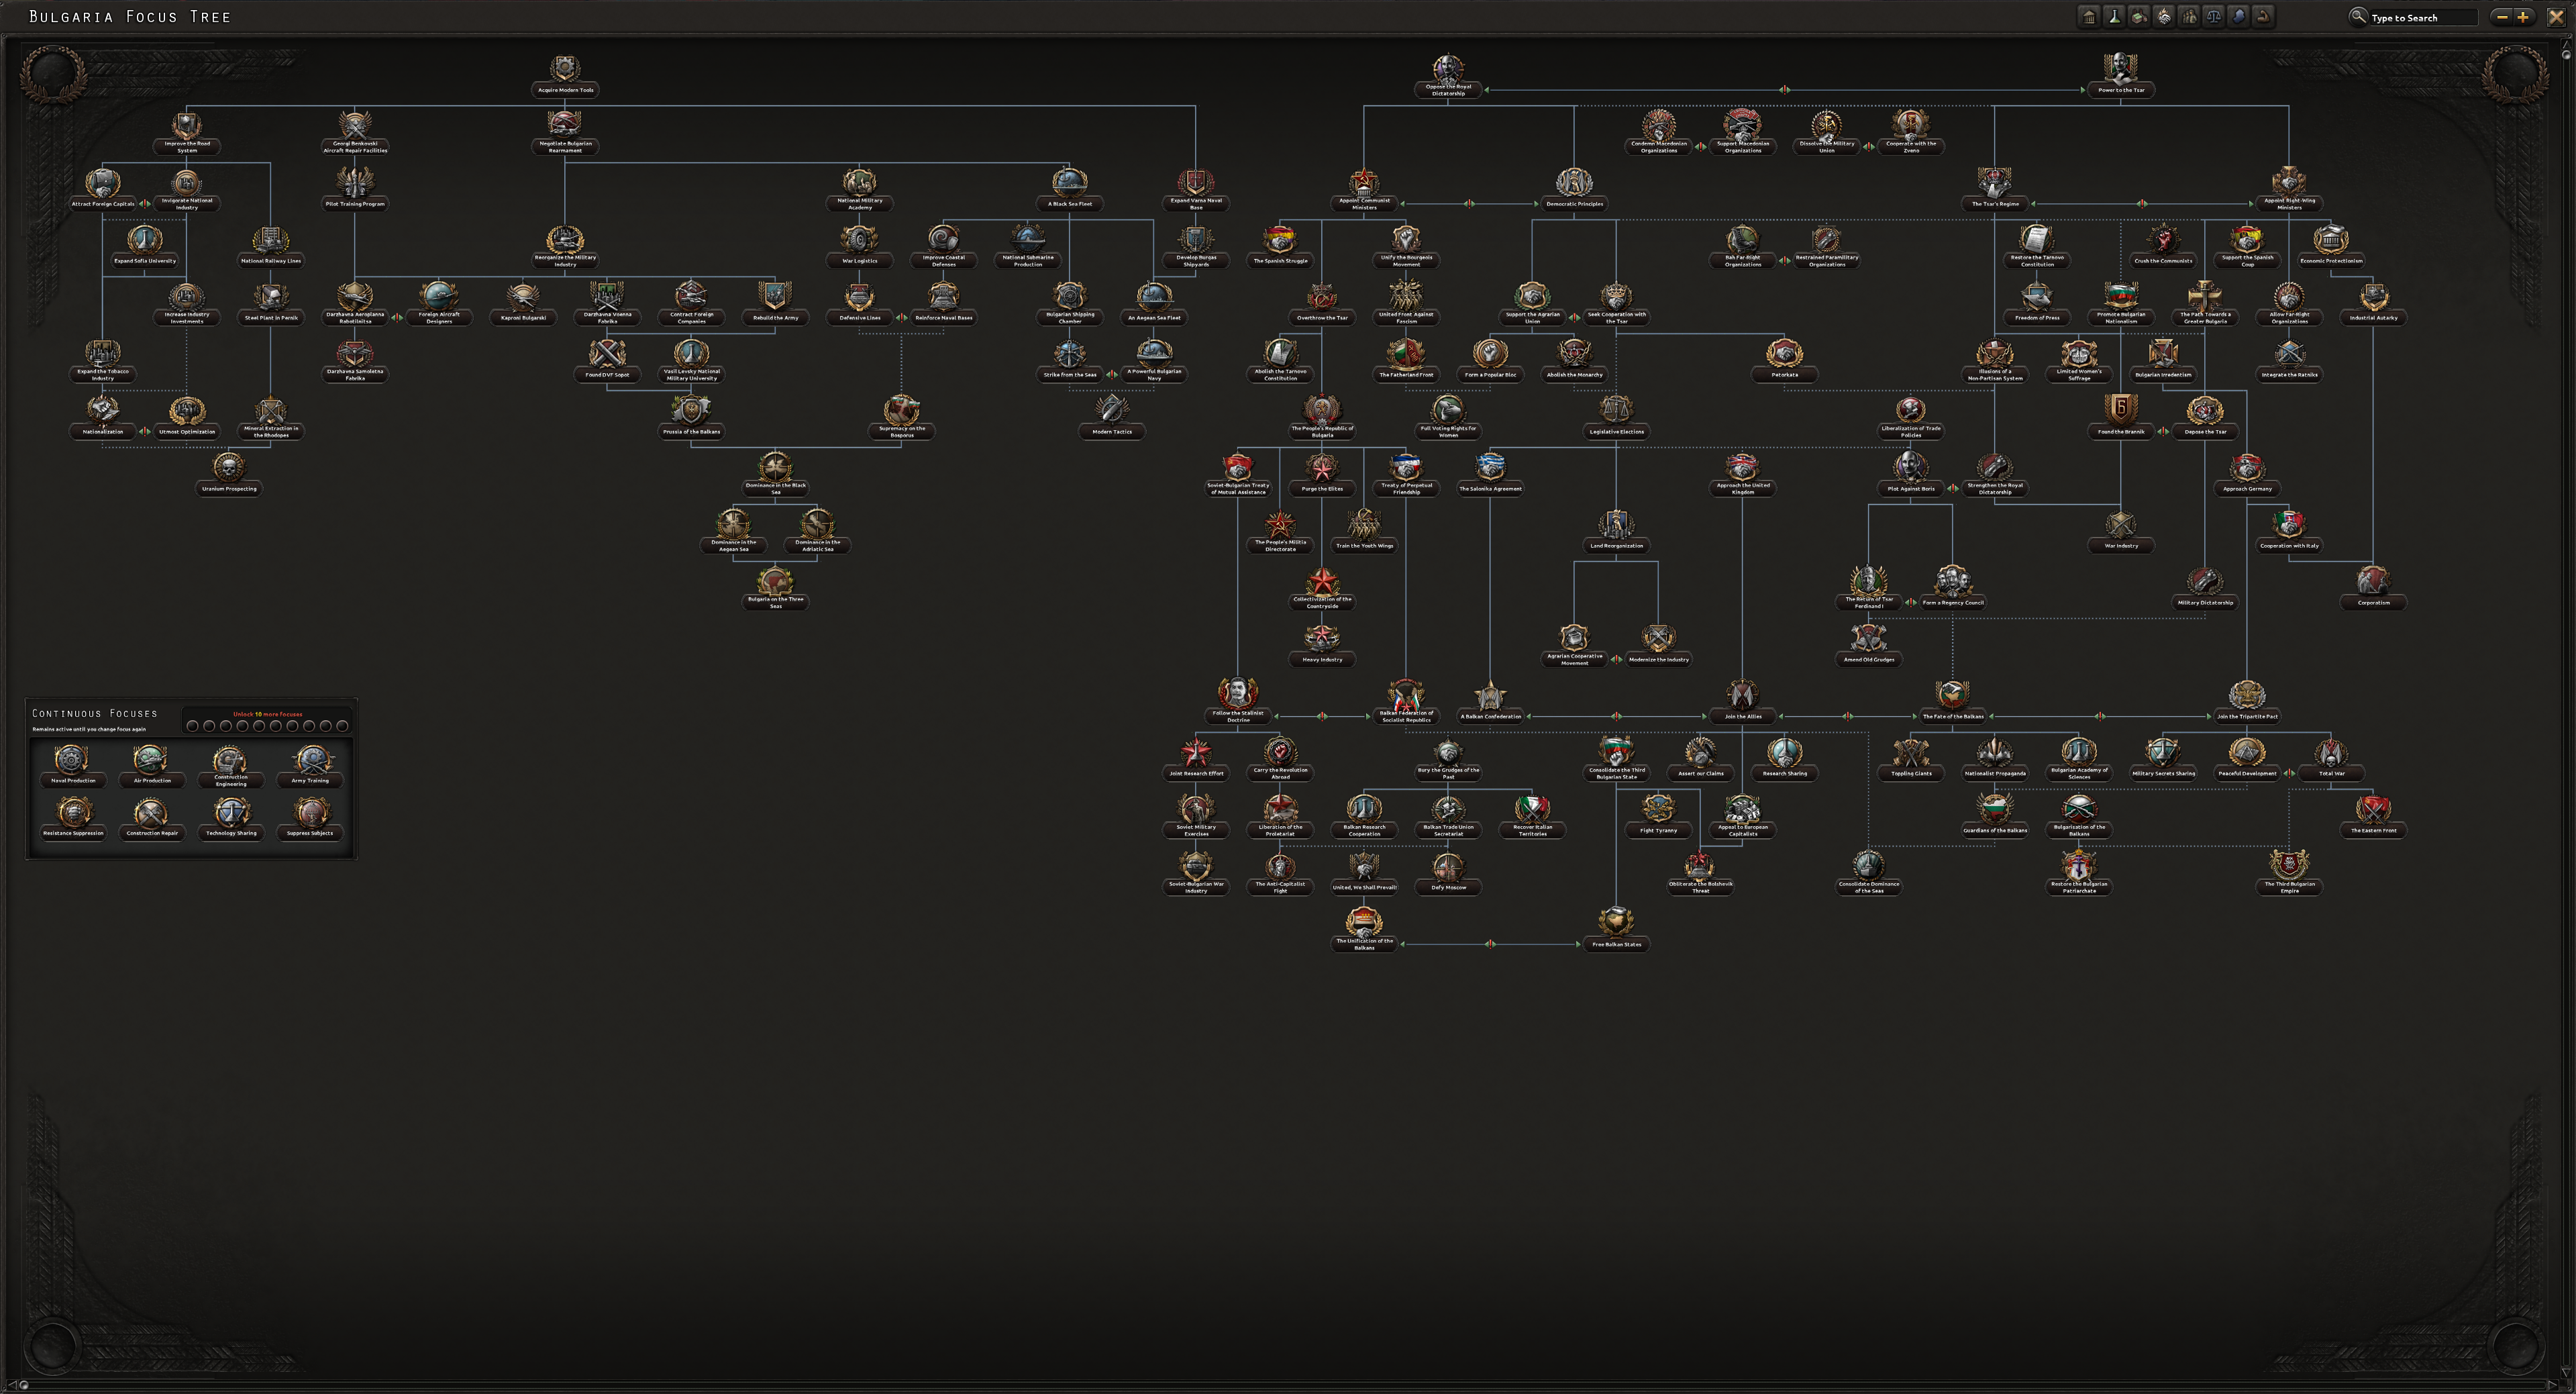 08 Bulgarian Focus Tree.png